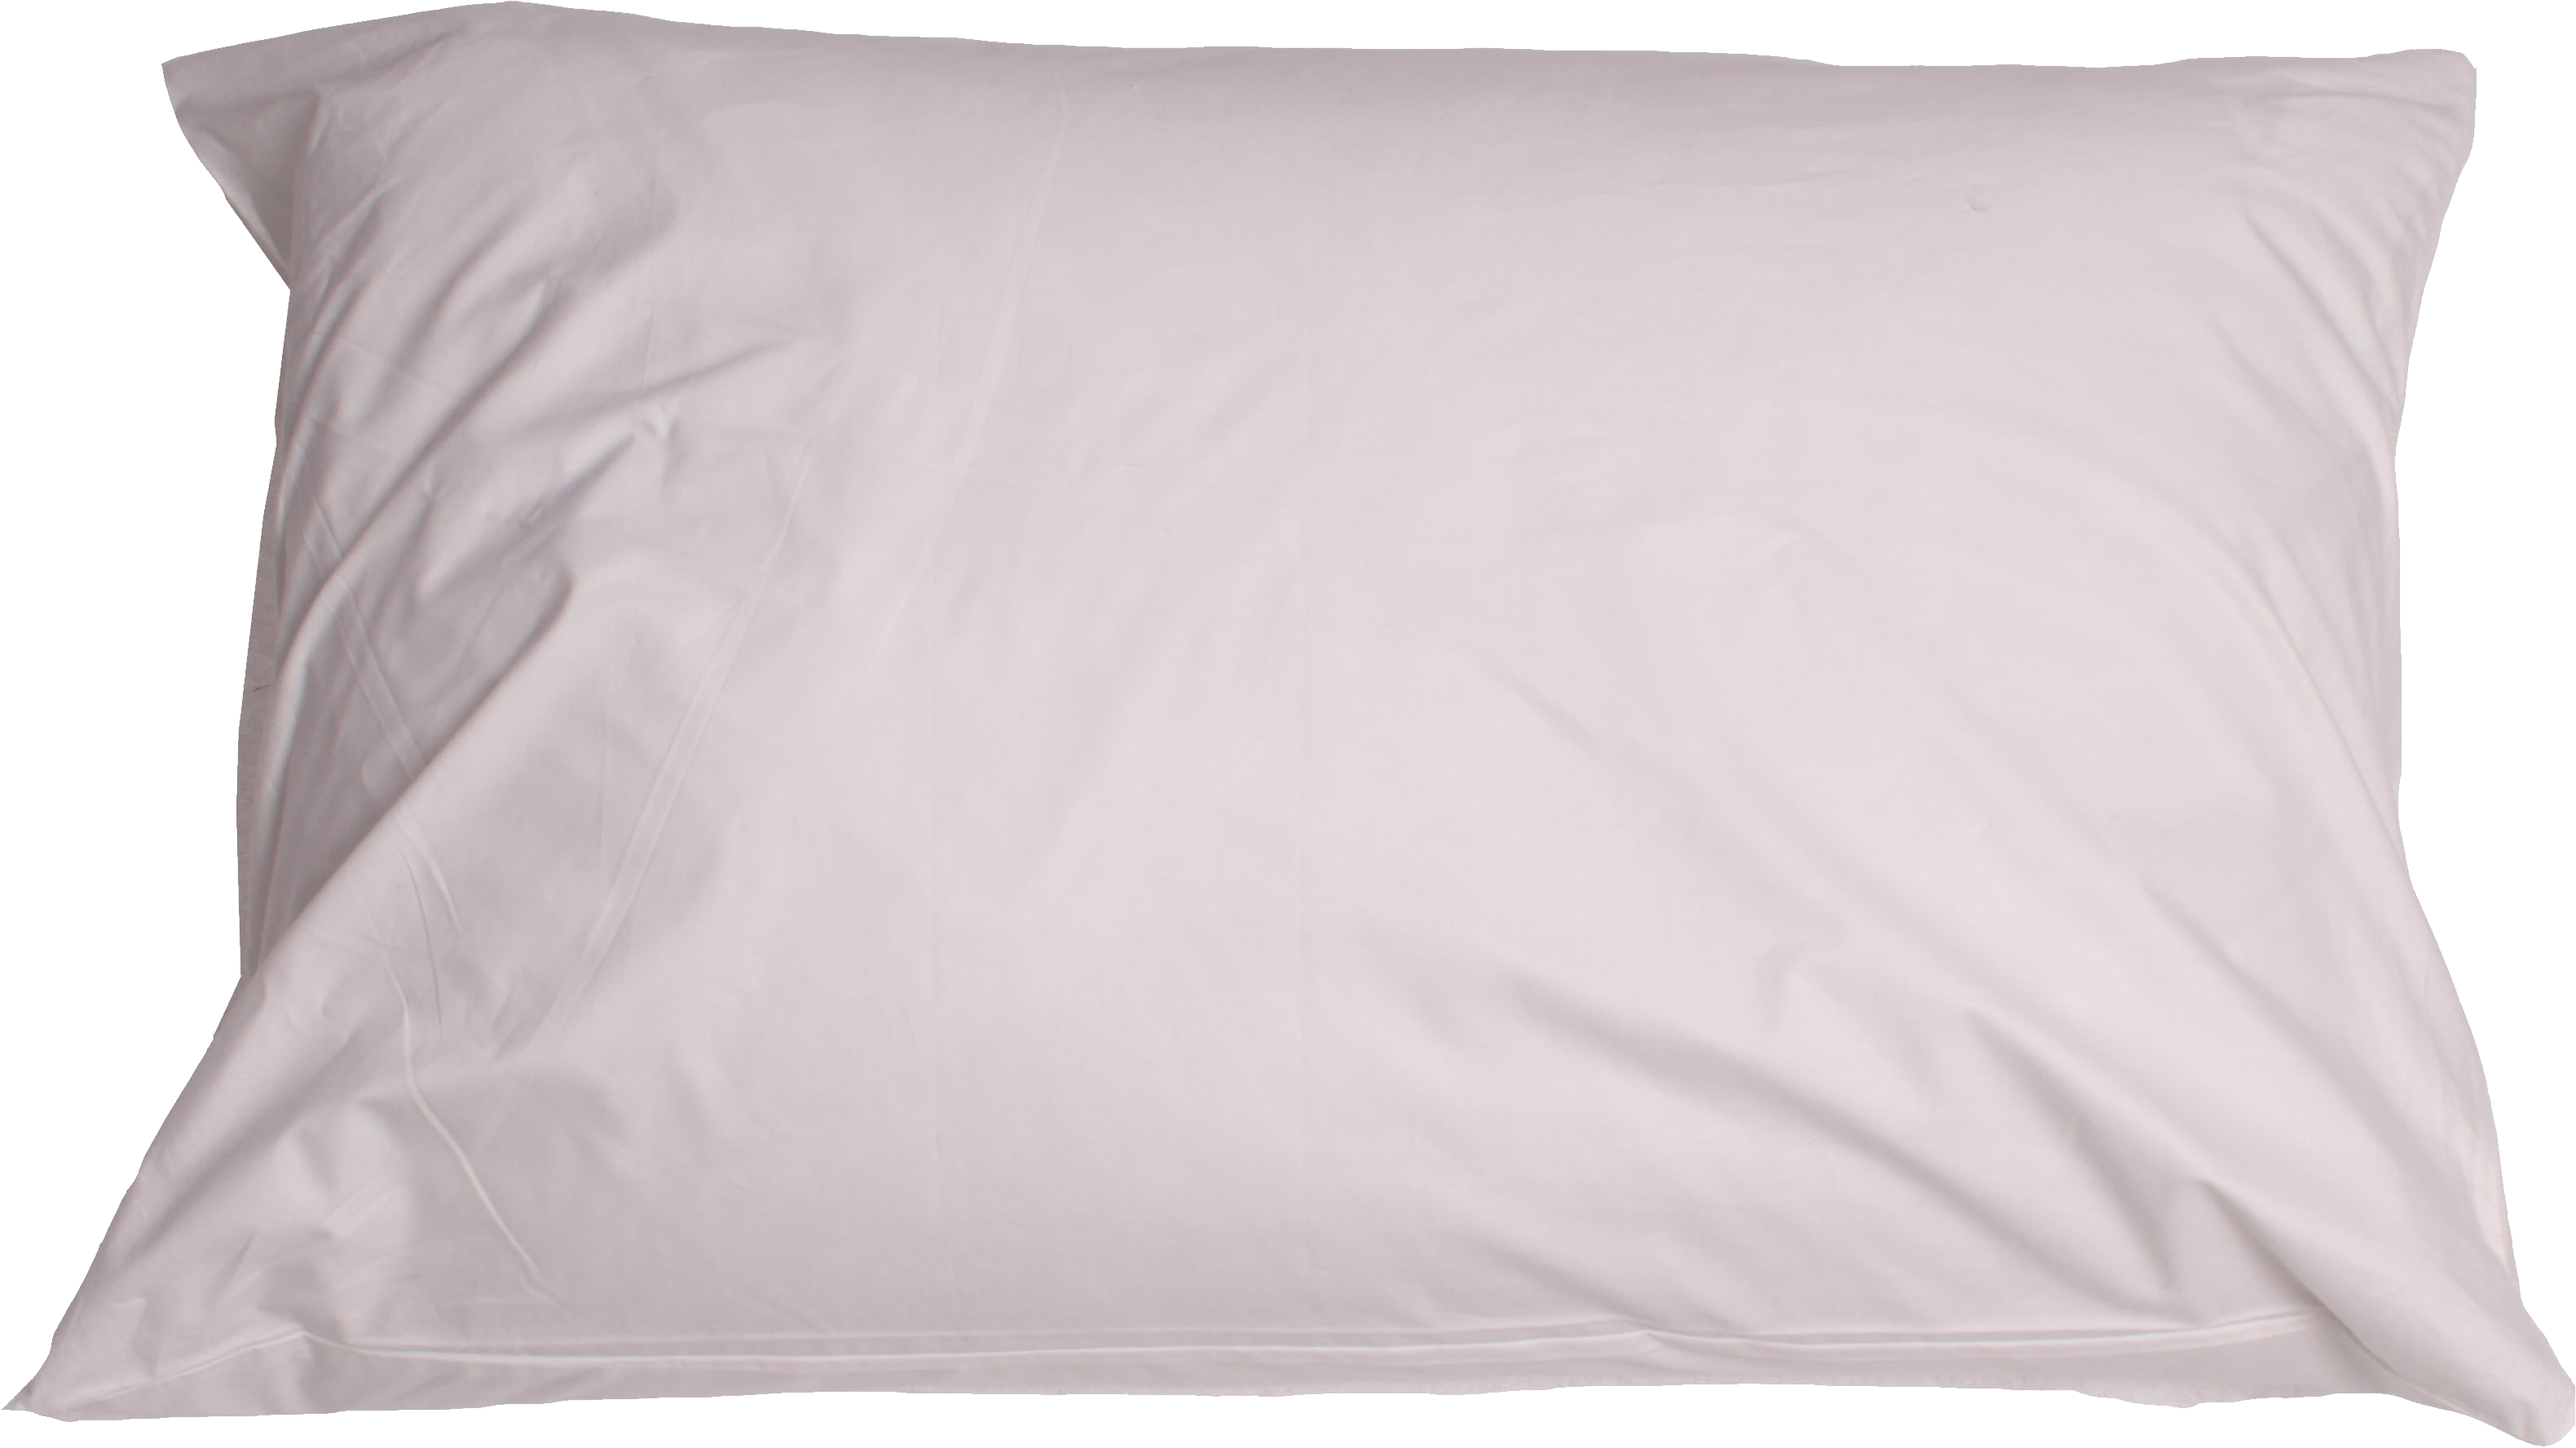 white pillow png